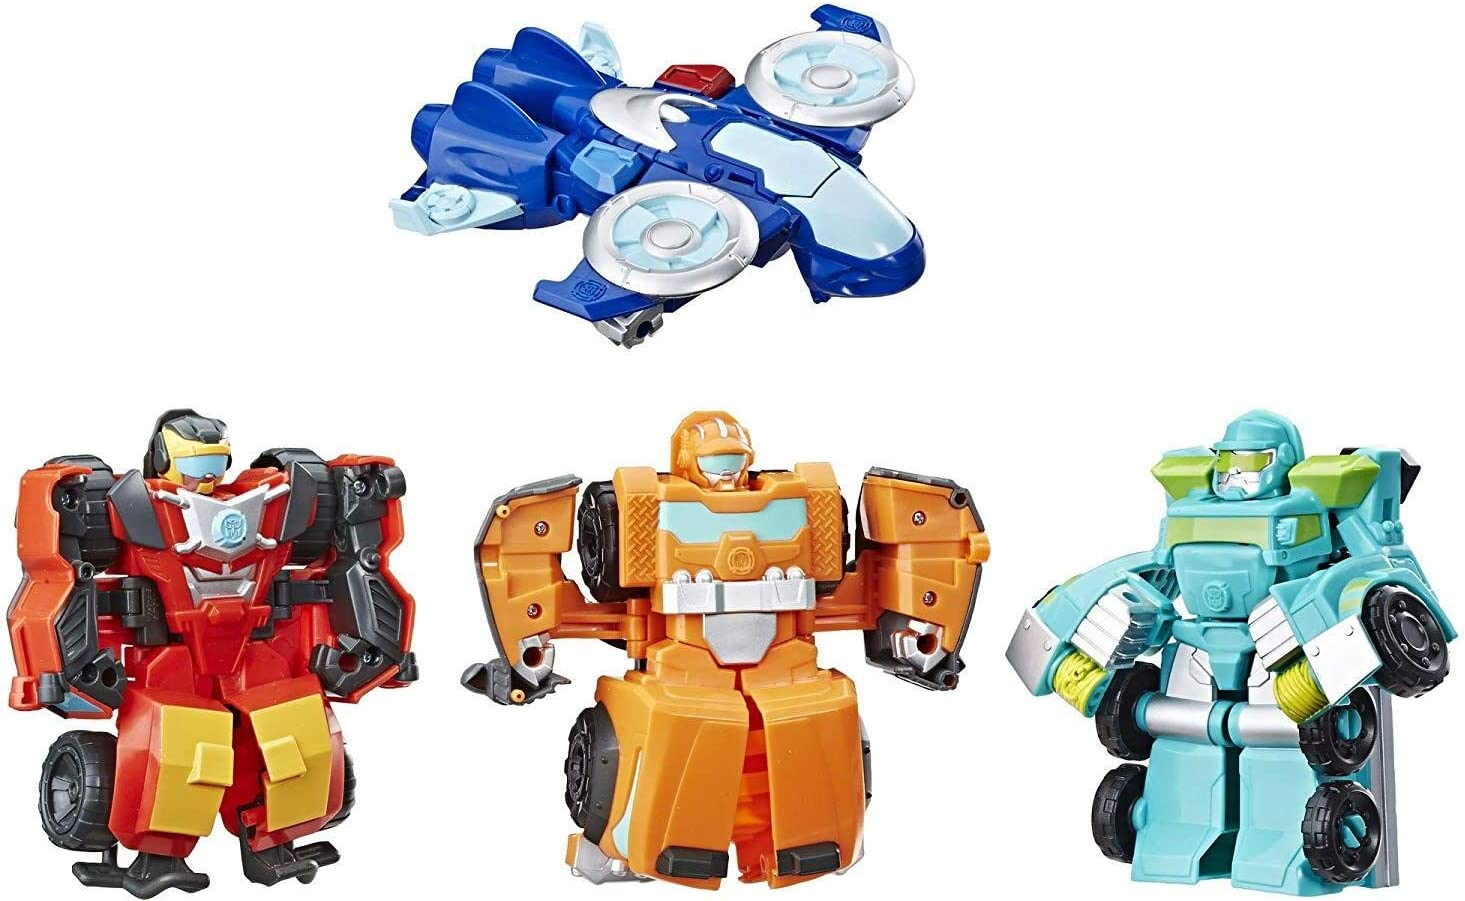 Amazon Com Playskool Heroes Transformers Rescue Bots Academy Rescue Team Pack 4 Collectible 4 5 Converting Action Figures Toys For Kids Ages 3 Up Brown E5099 Toys Games